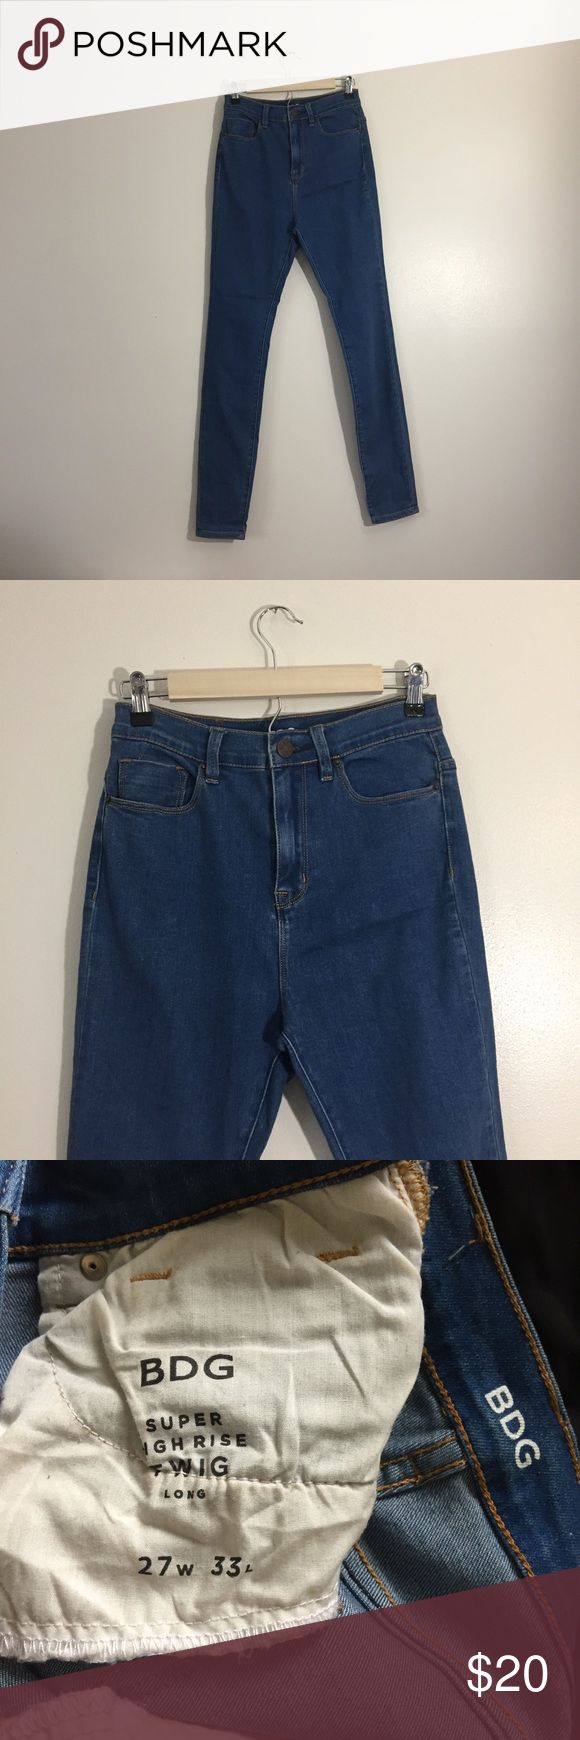 BDG Twig super high rise skinny jean Like new BDG from Urban Outfitters Twig super high rise skinny jean in indigo vintage. In excellent condition, never worn. Pair with your favorite crop top or bodysuit, choker and sandals for any occasion. Price is firm. Urban Outfitters Jeans Skinny